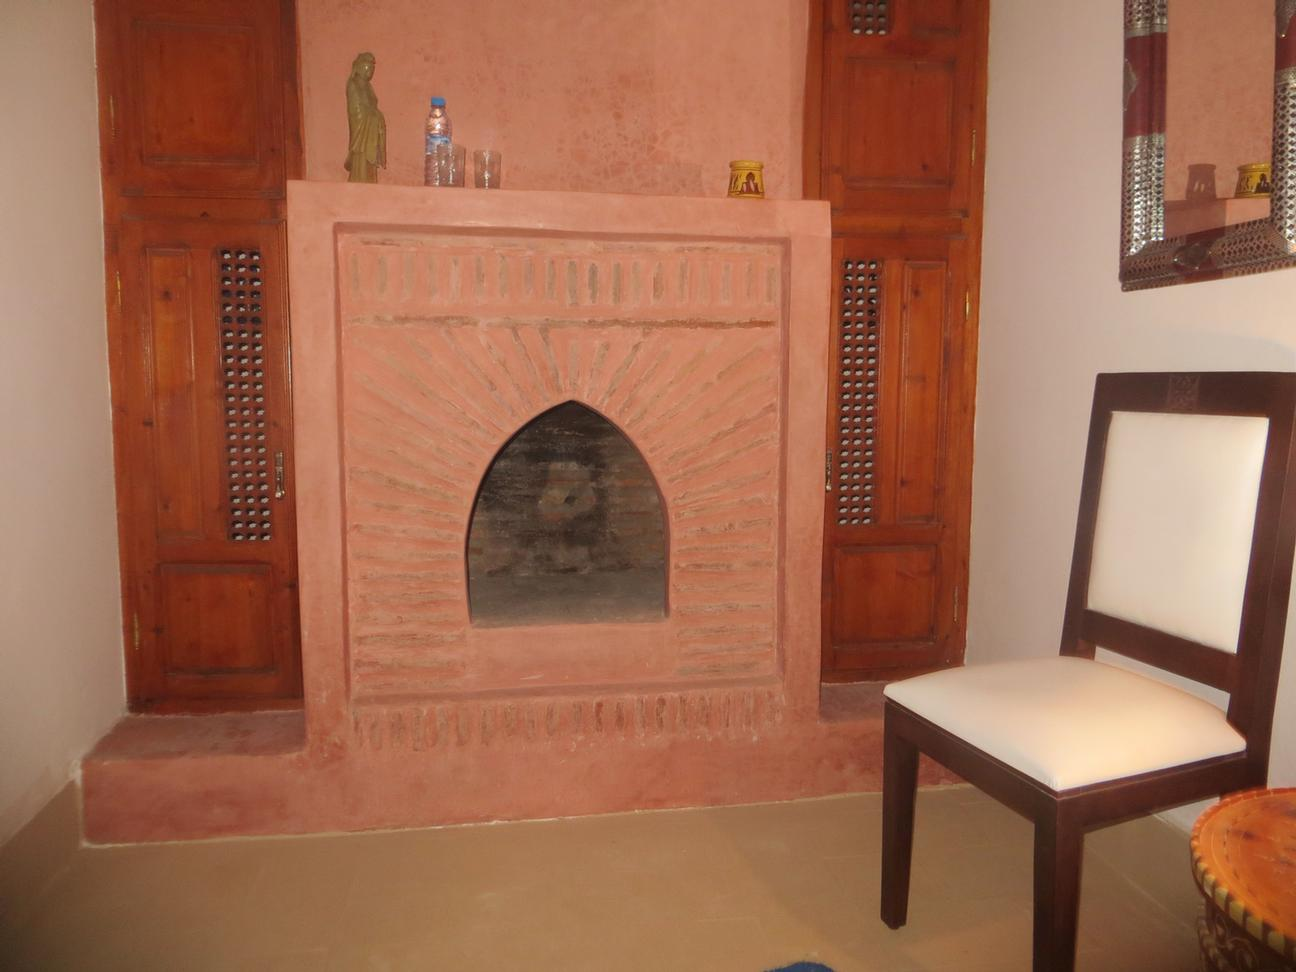 Moroccan Fireplace 15 of 31